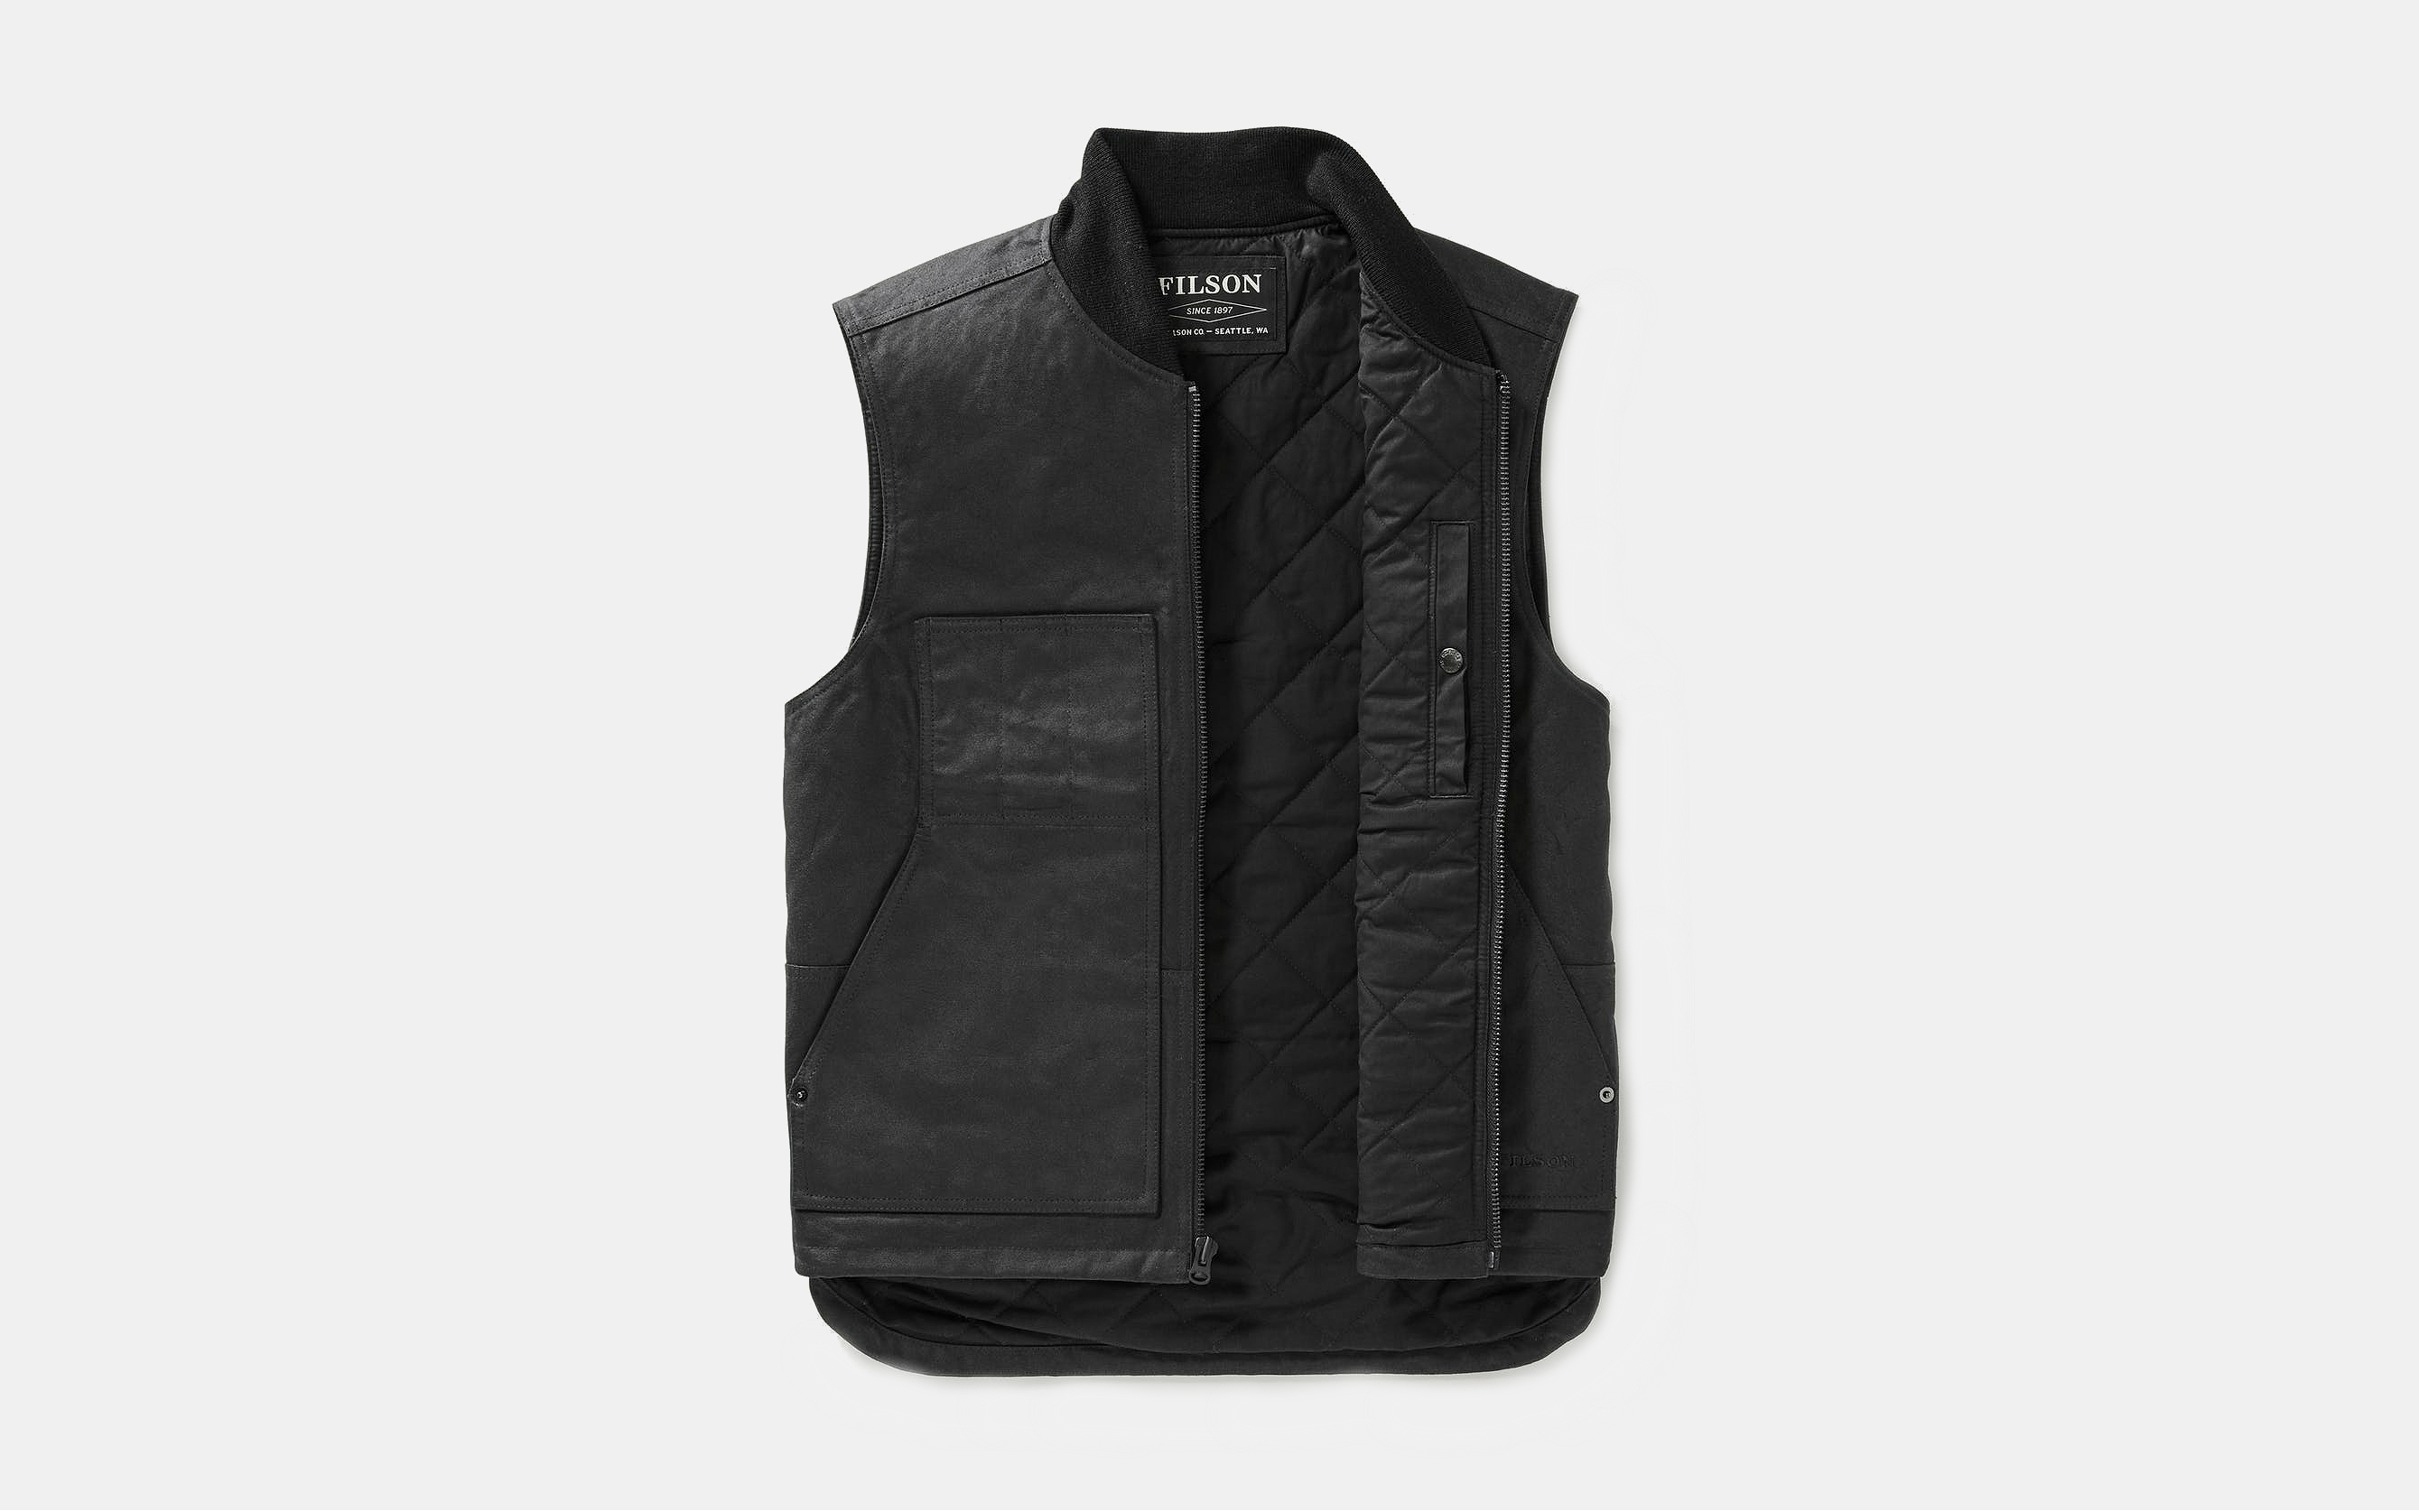 Filson Wax Work Vest